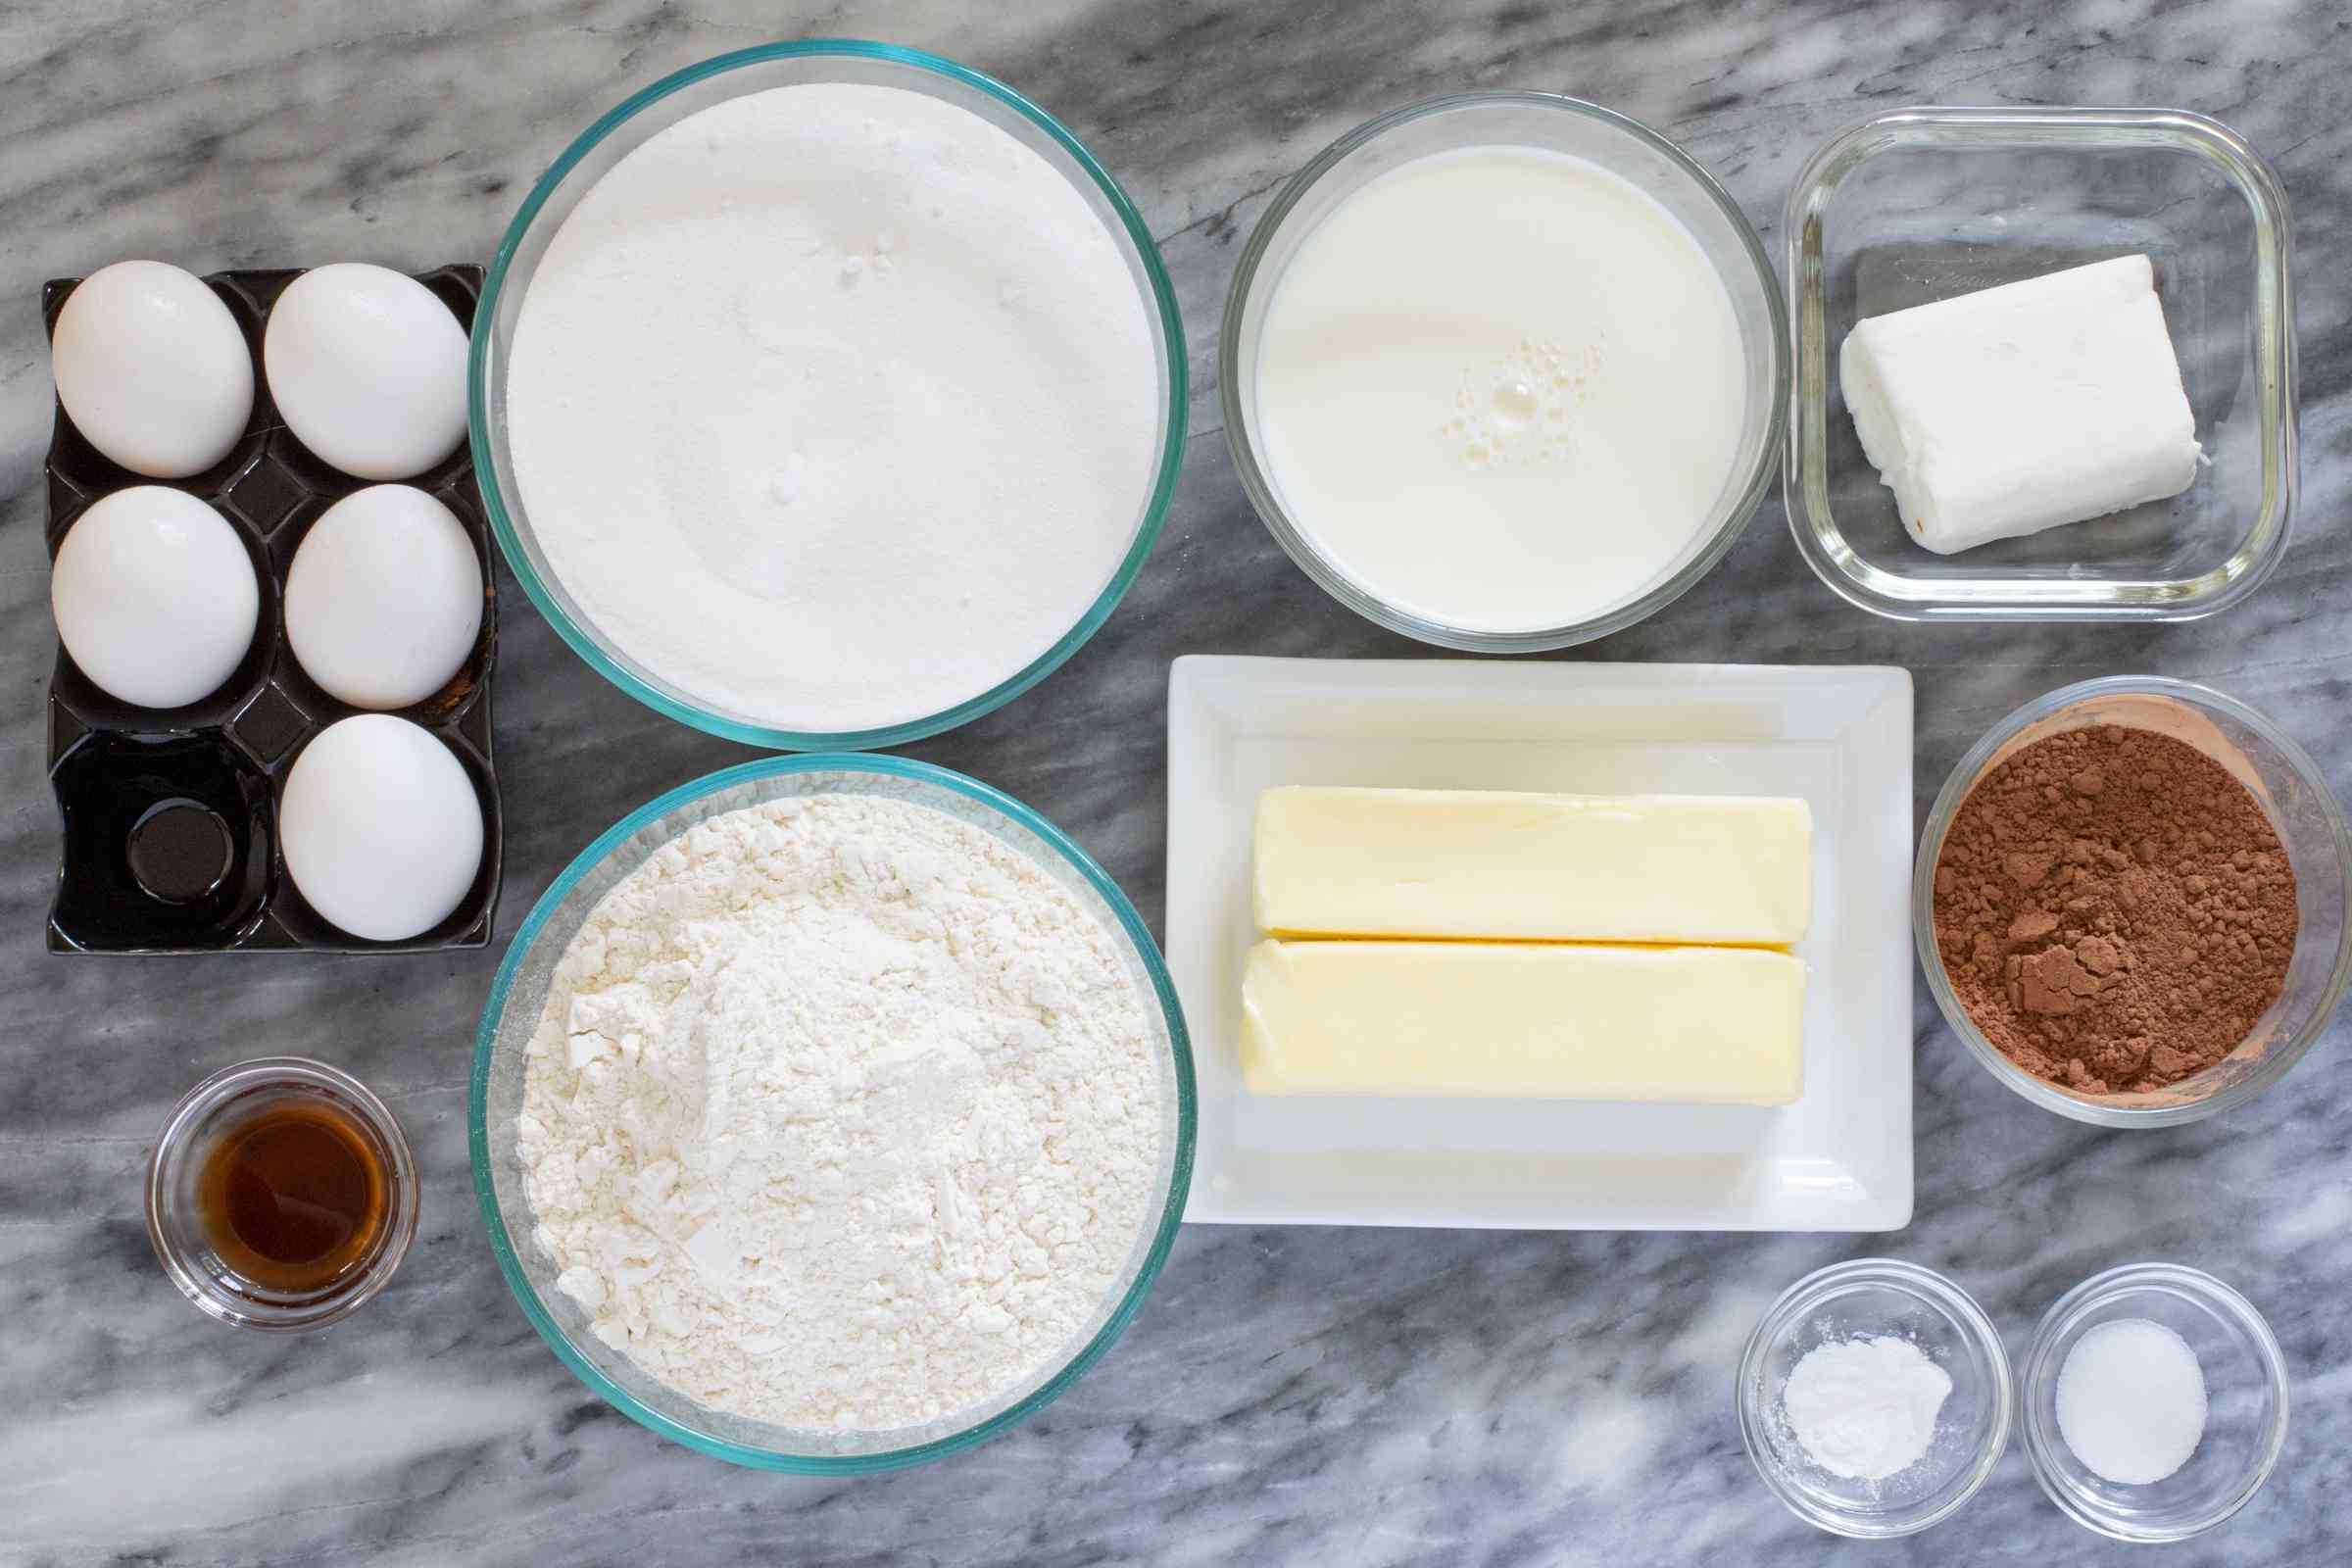 Ingredients for chocolate pound cake.